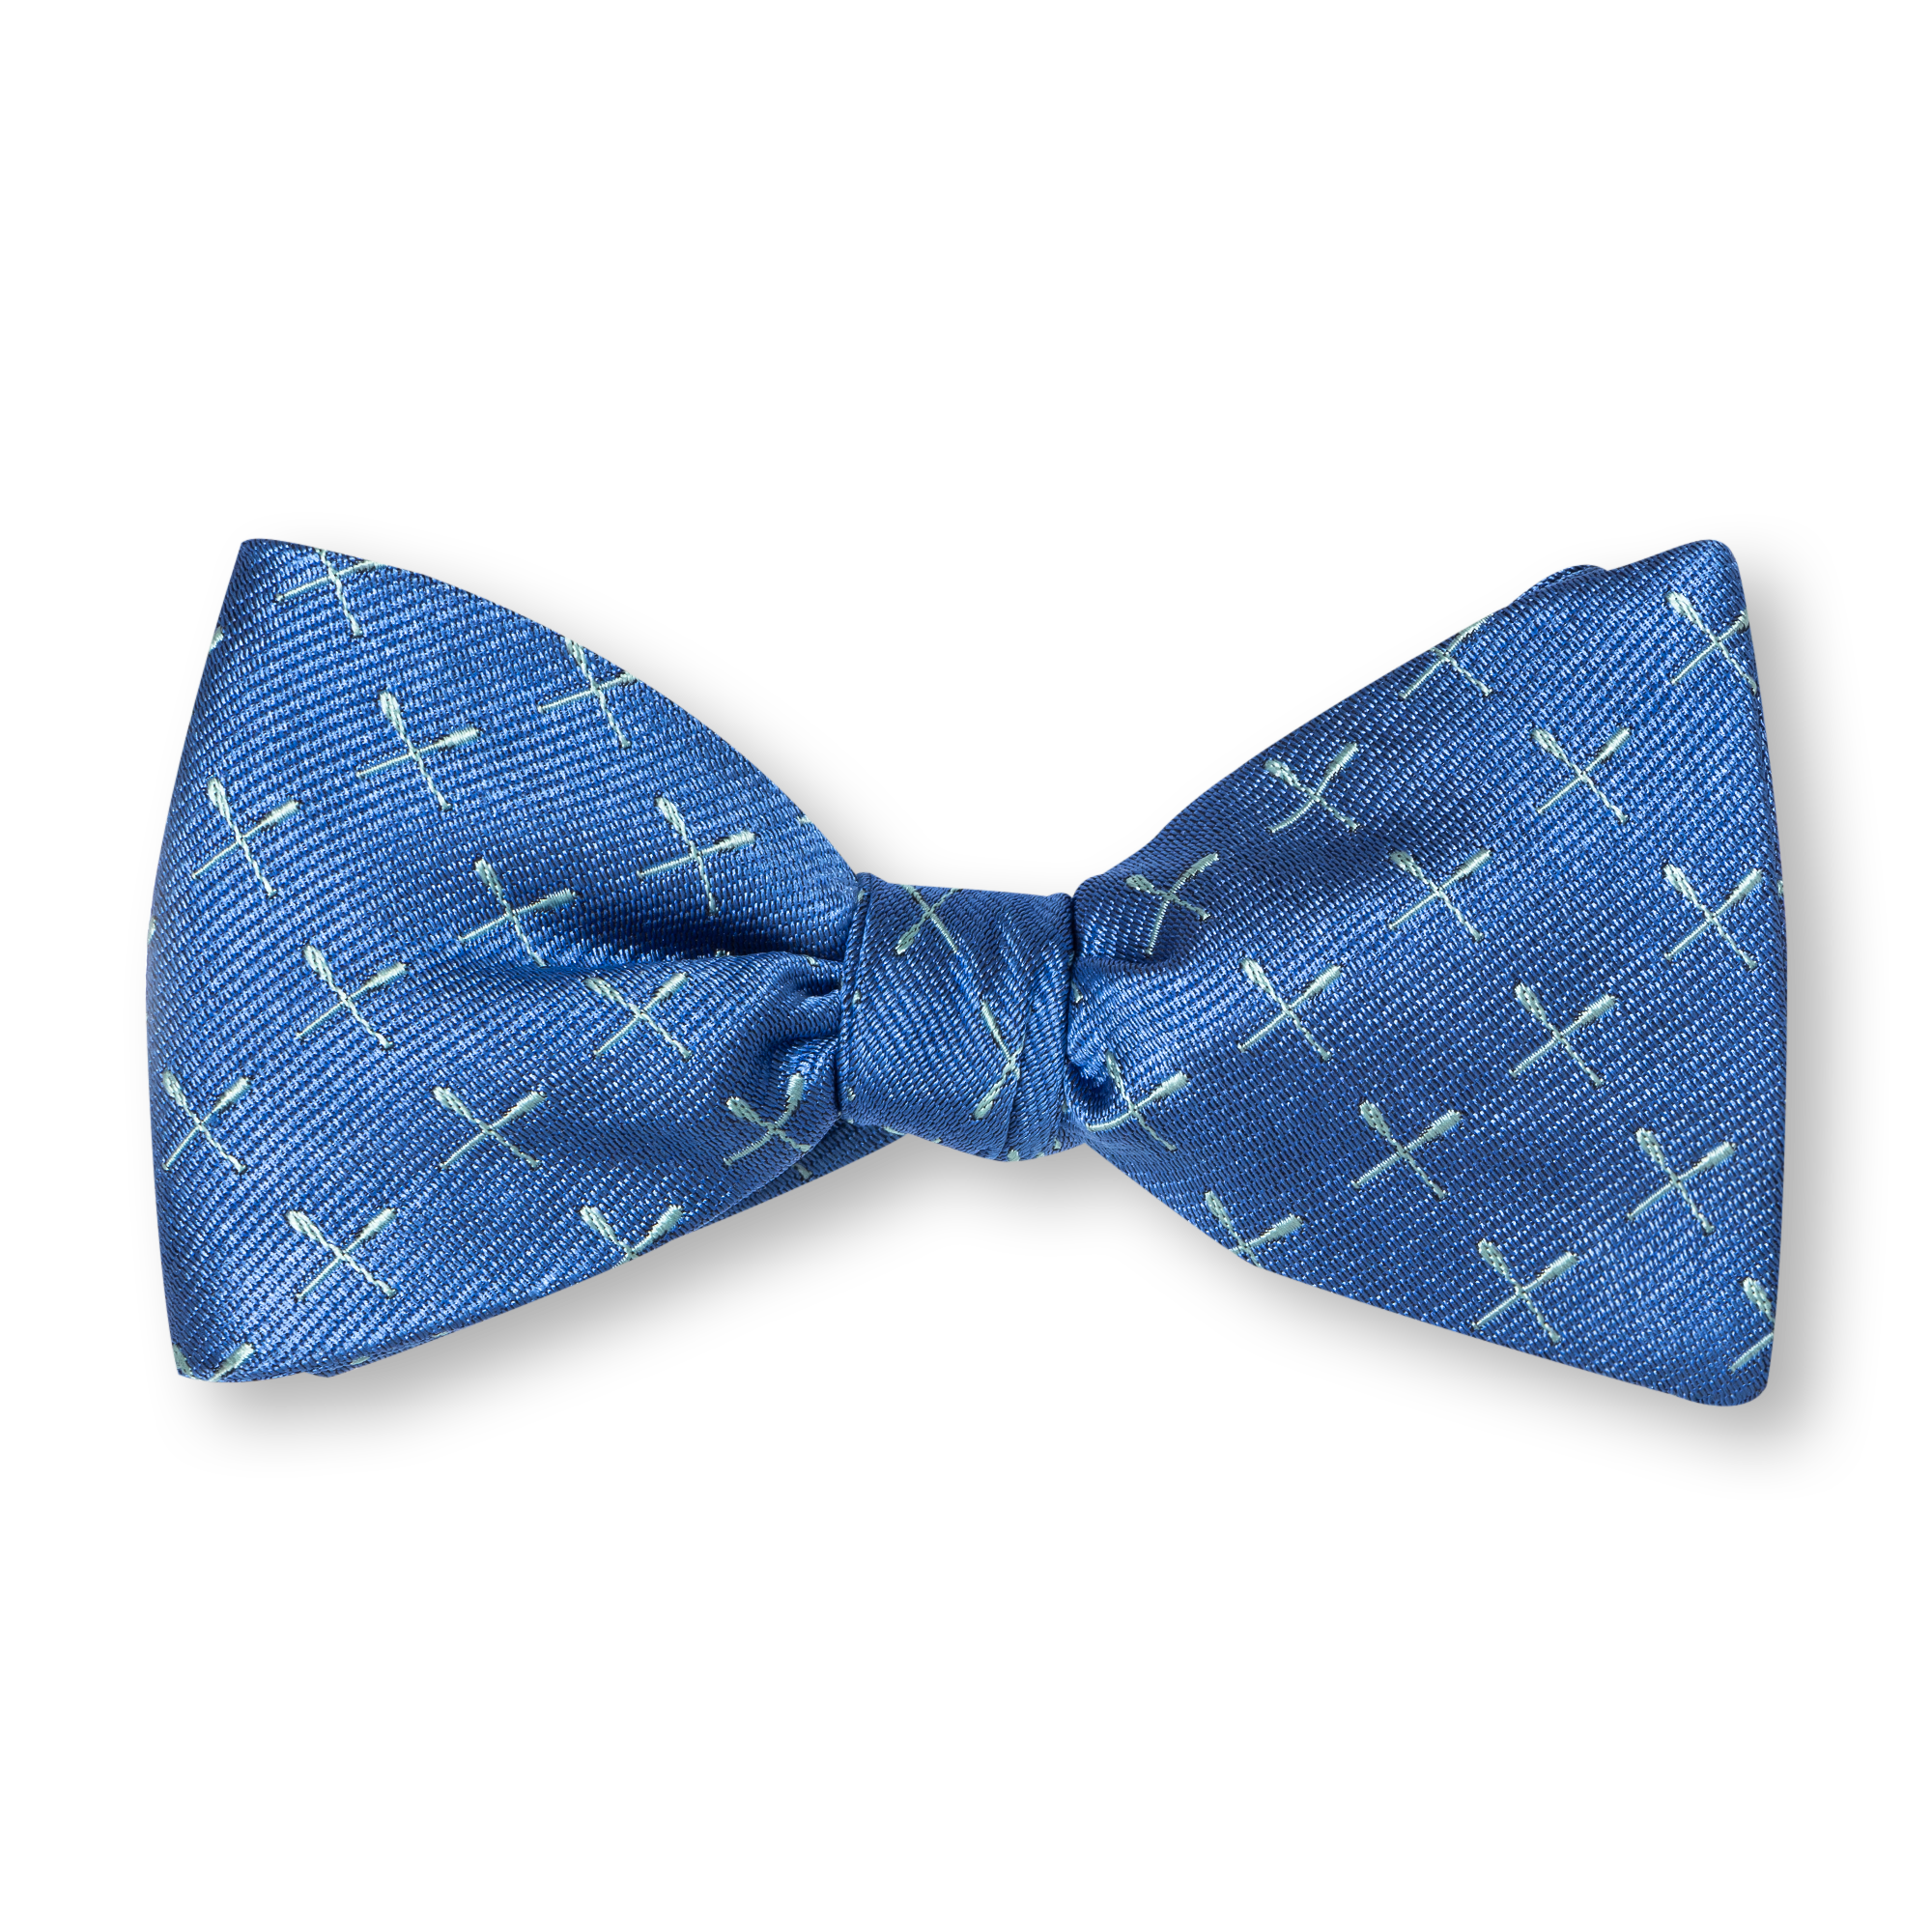 blue Bow ties product photography